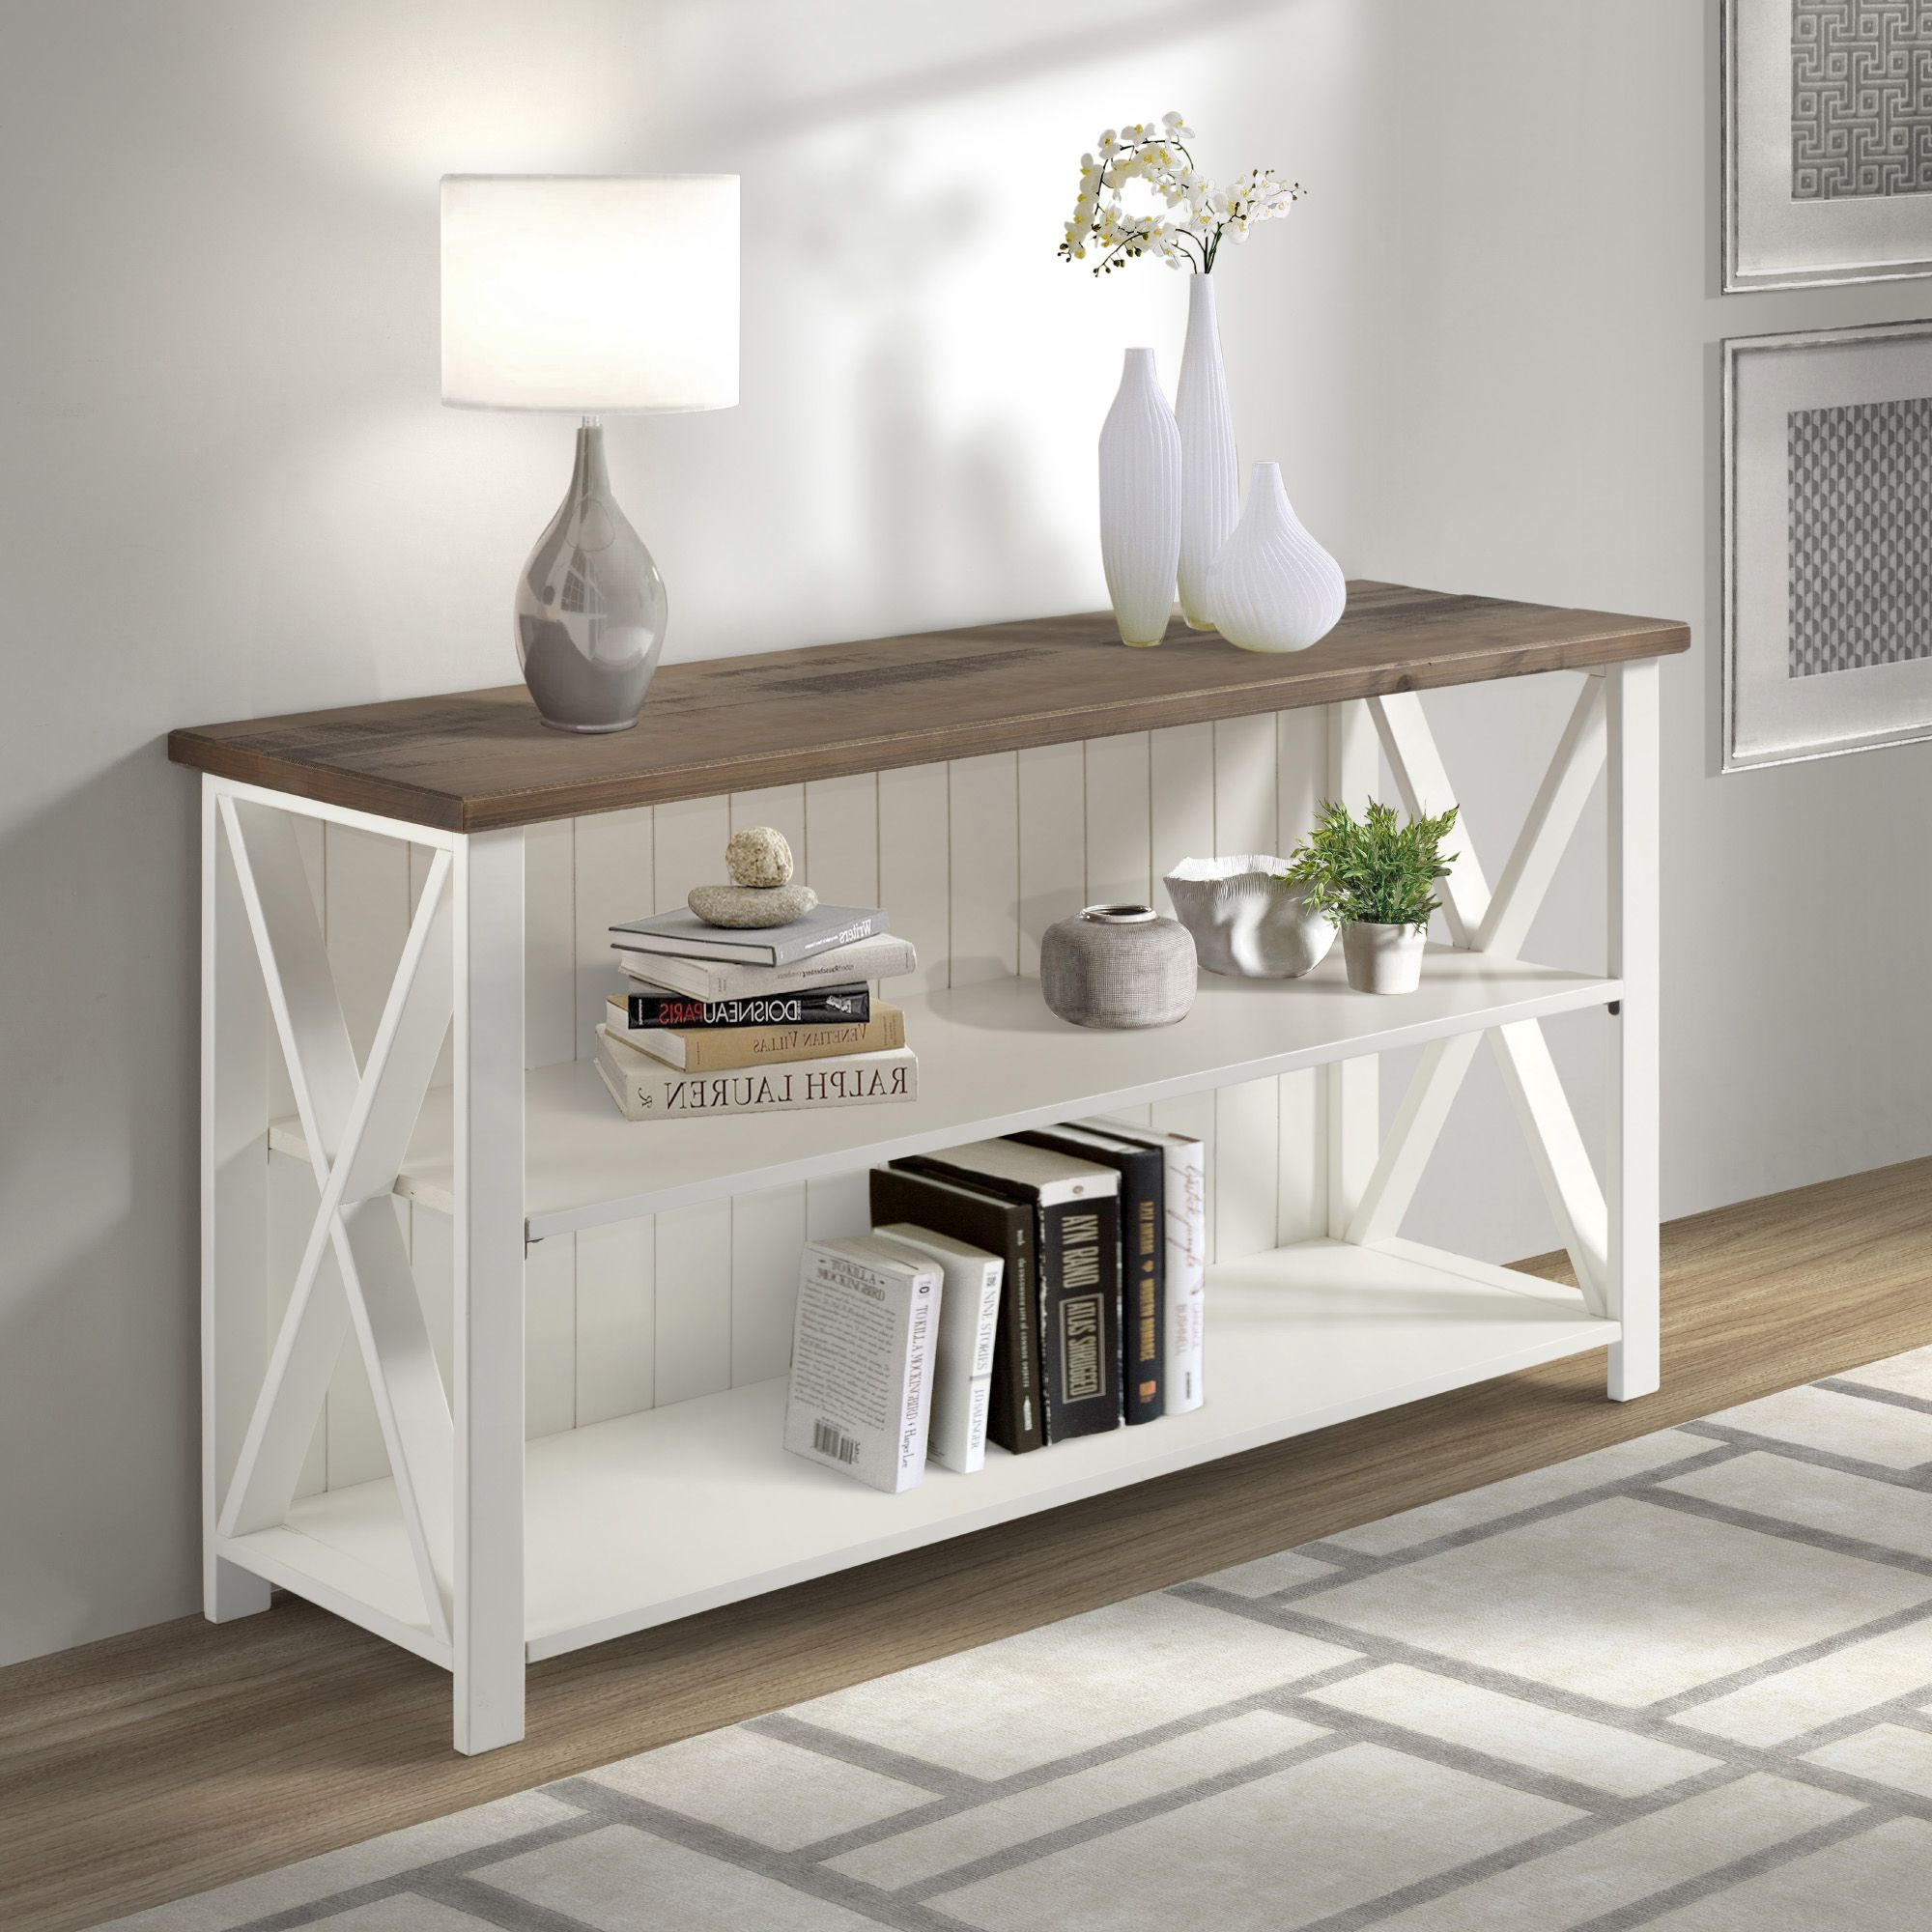 2018 Woven Paths Barn Door Tv Stands In Multiple Finishes Pertaining To Woven Paths Solid Wood Storage Console Table, White (View 8 of 10)